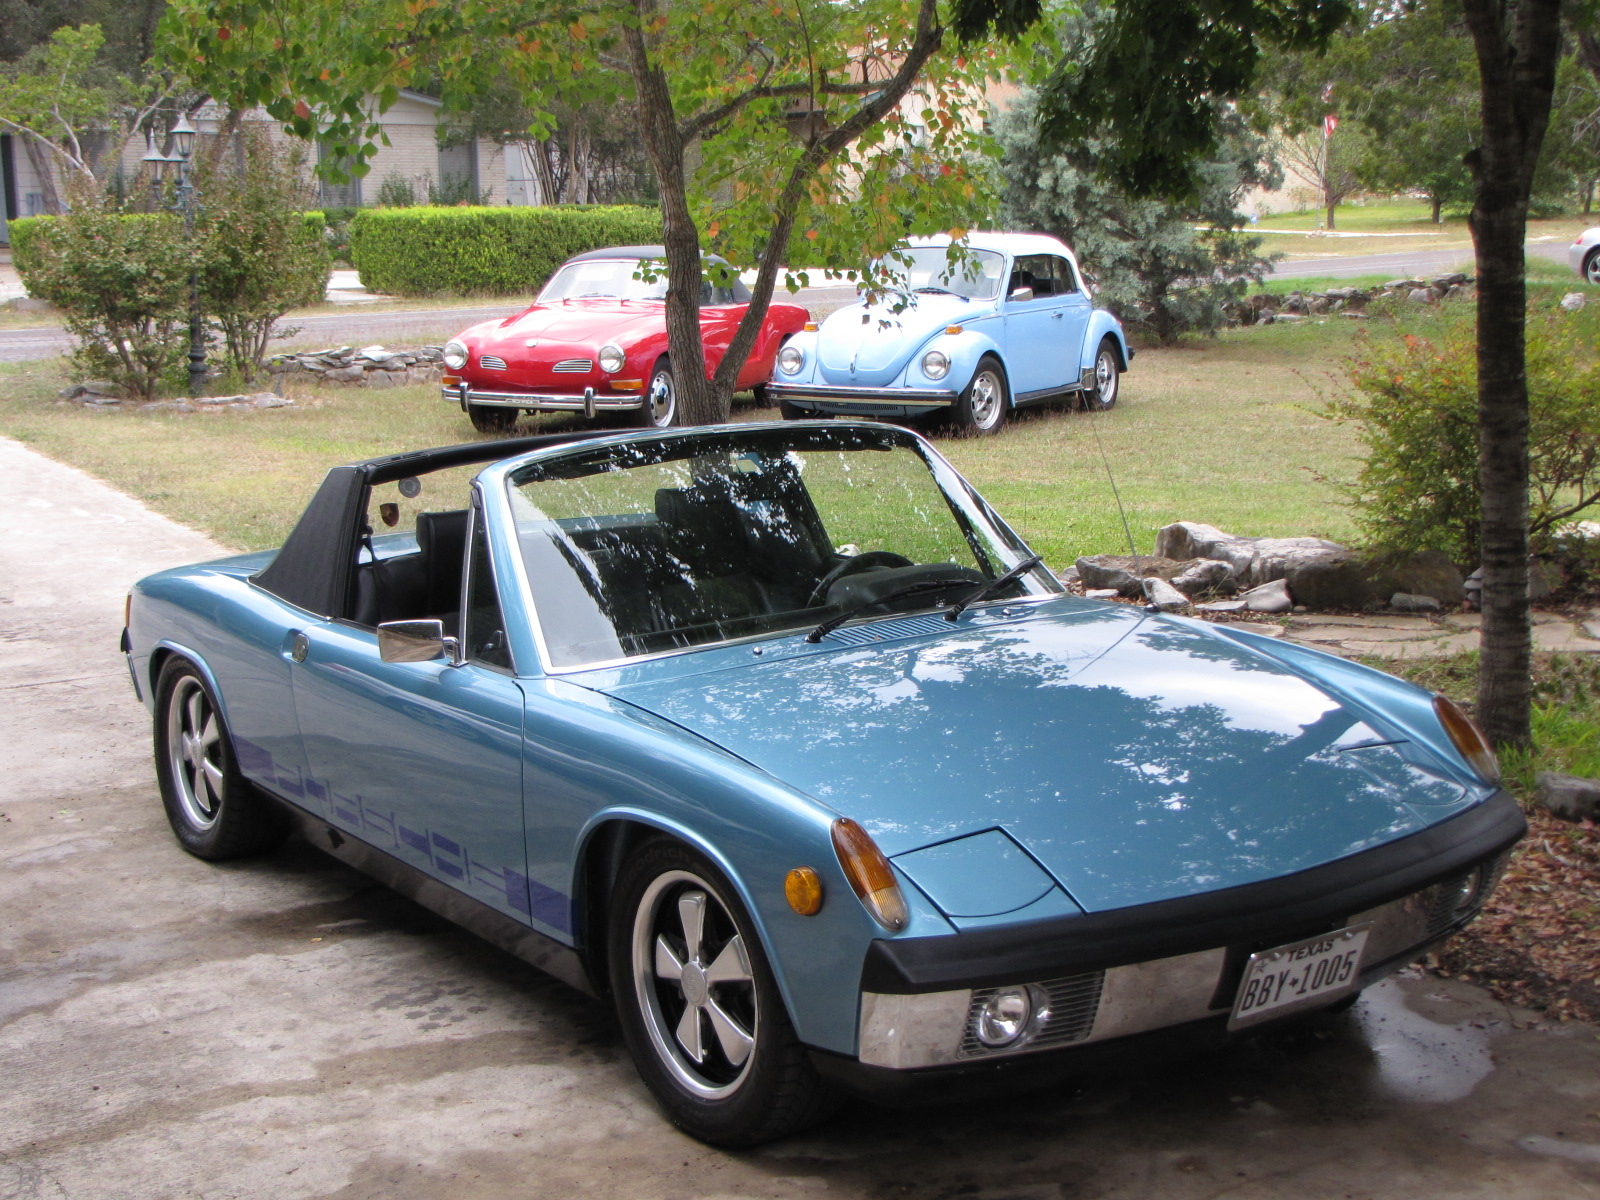 operation blue berblau 1973 porsche 914 uber werks vehicle restoration design. Black Bedroom Furniture Sets. Home Design Ideas